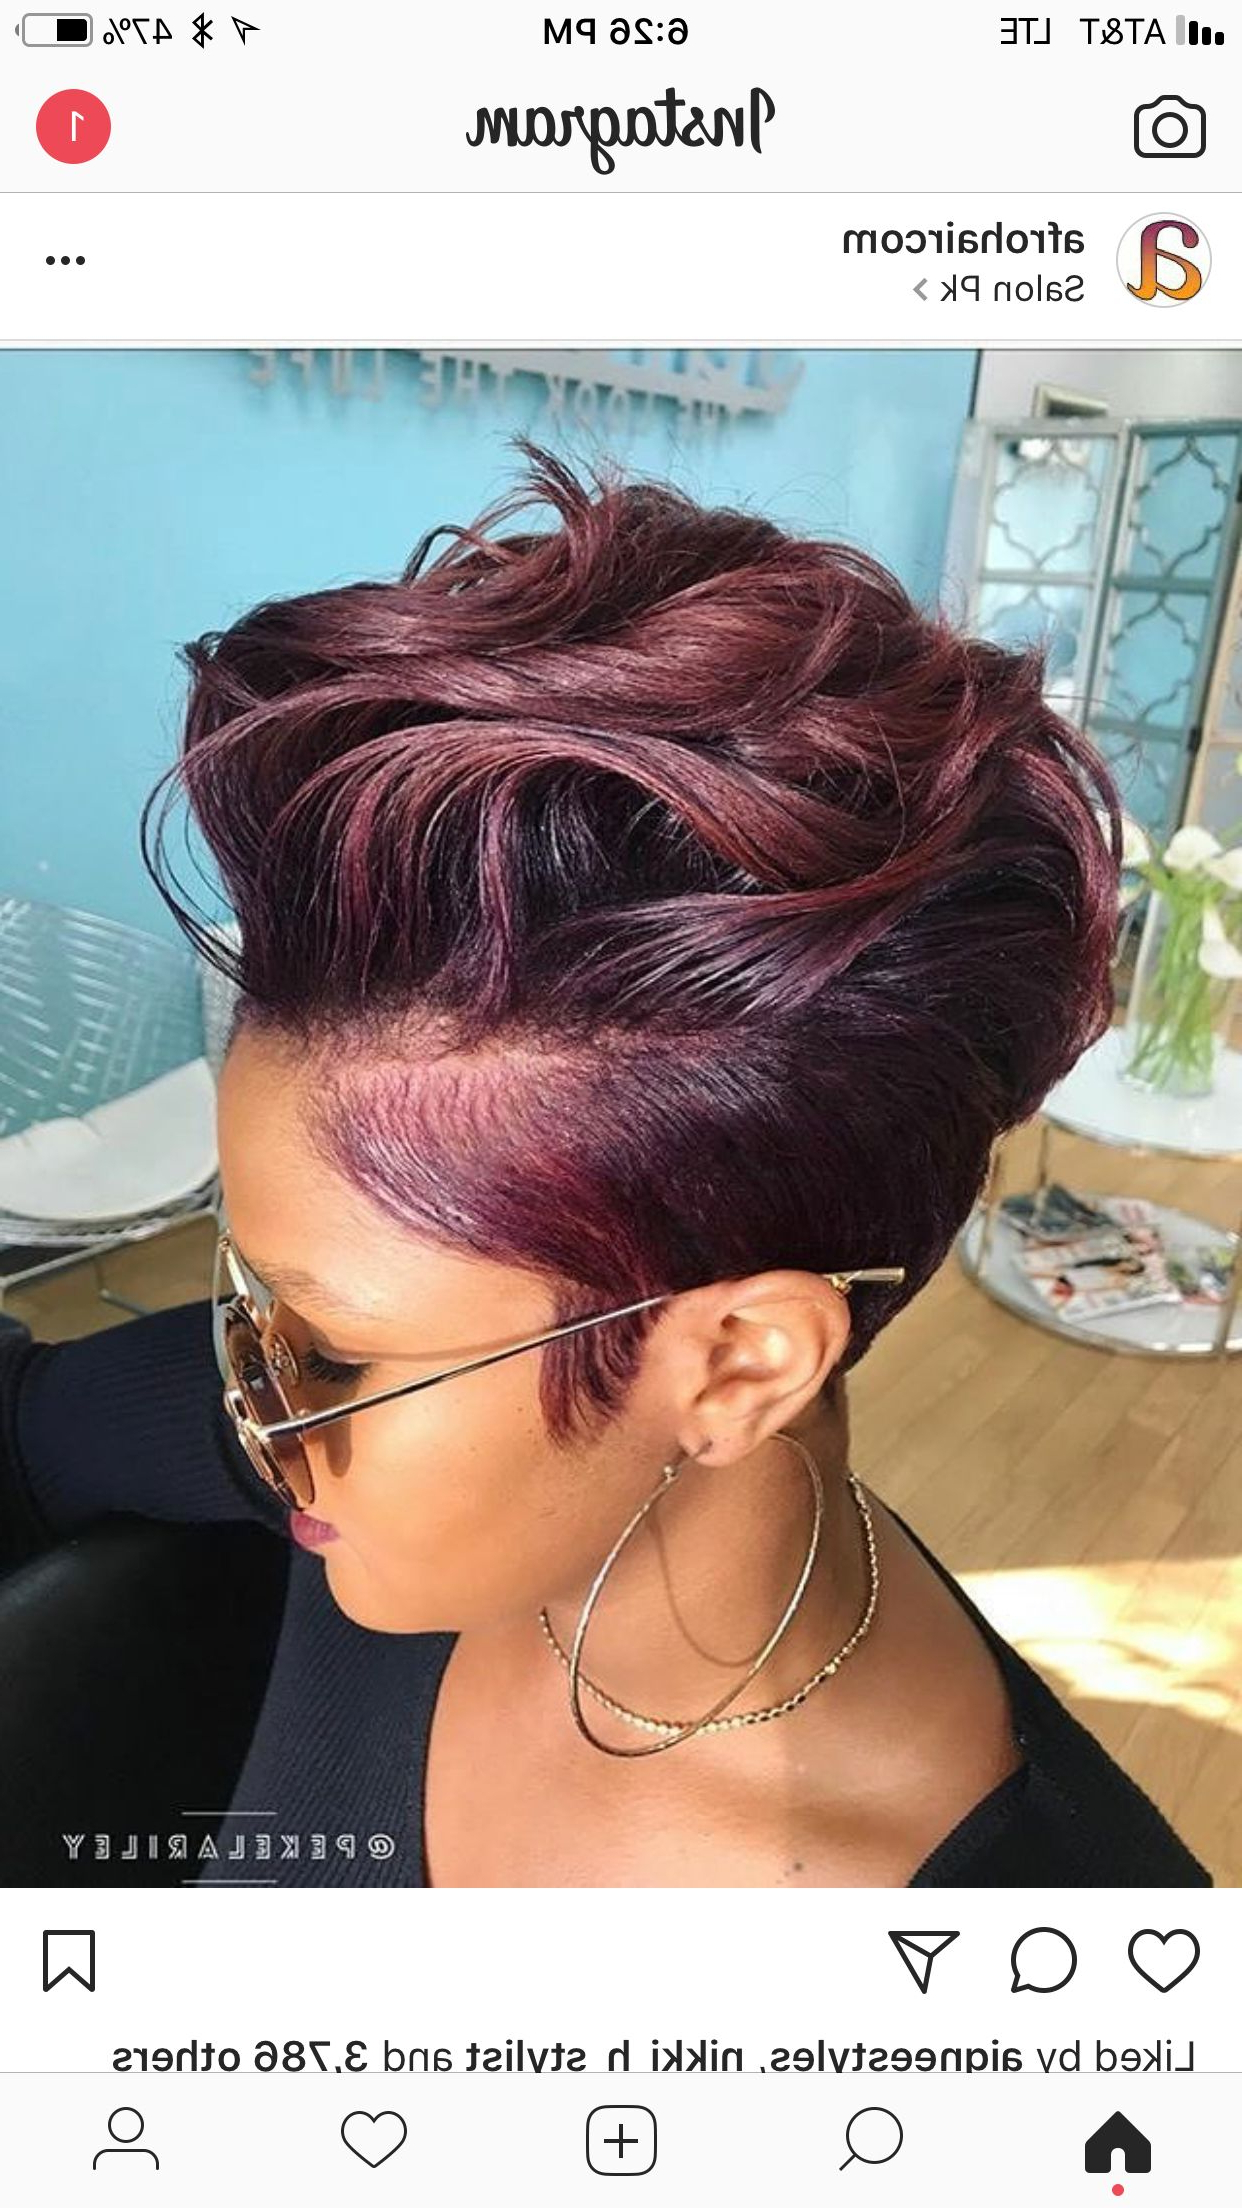 Bold N Burgundy This Cut Is Life | Love That Hair & Make Up!!! In Pertaining To Burgundy Short Hairstyles (View 3 of 25)